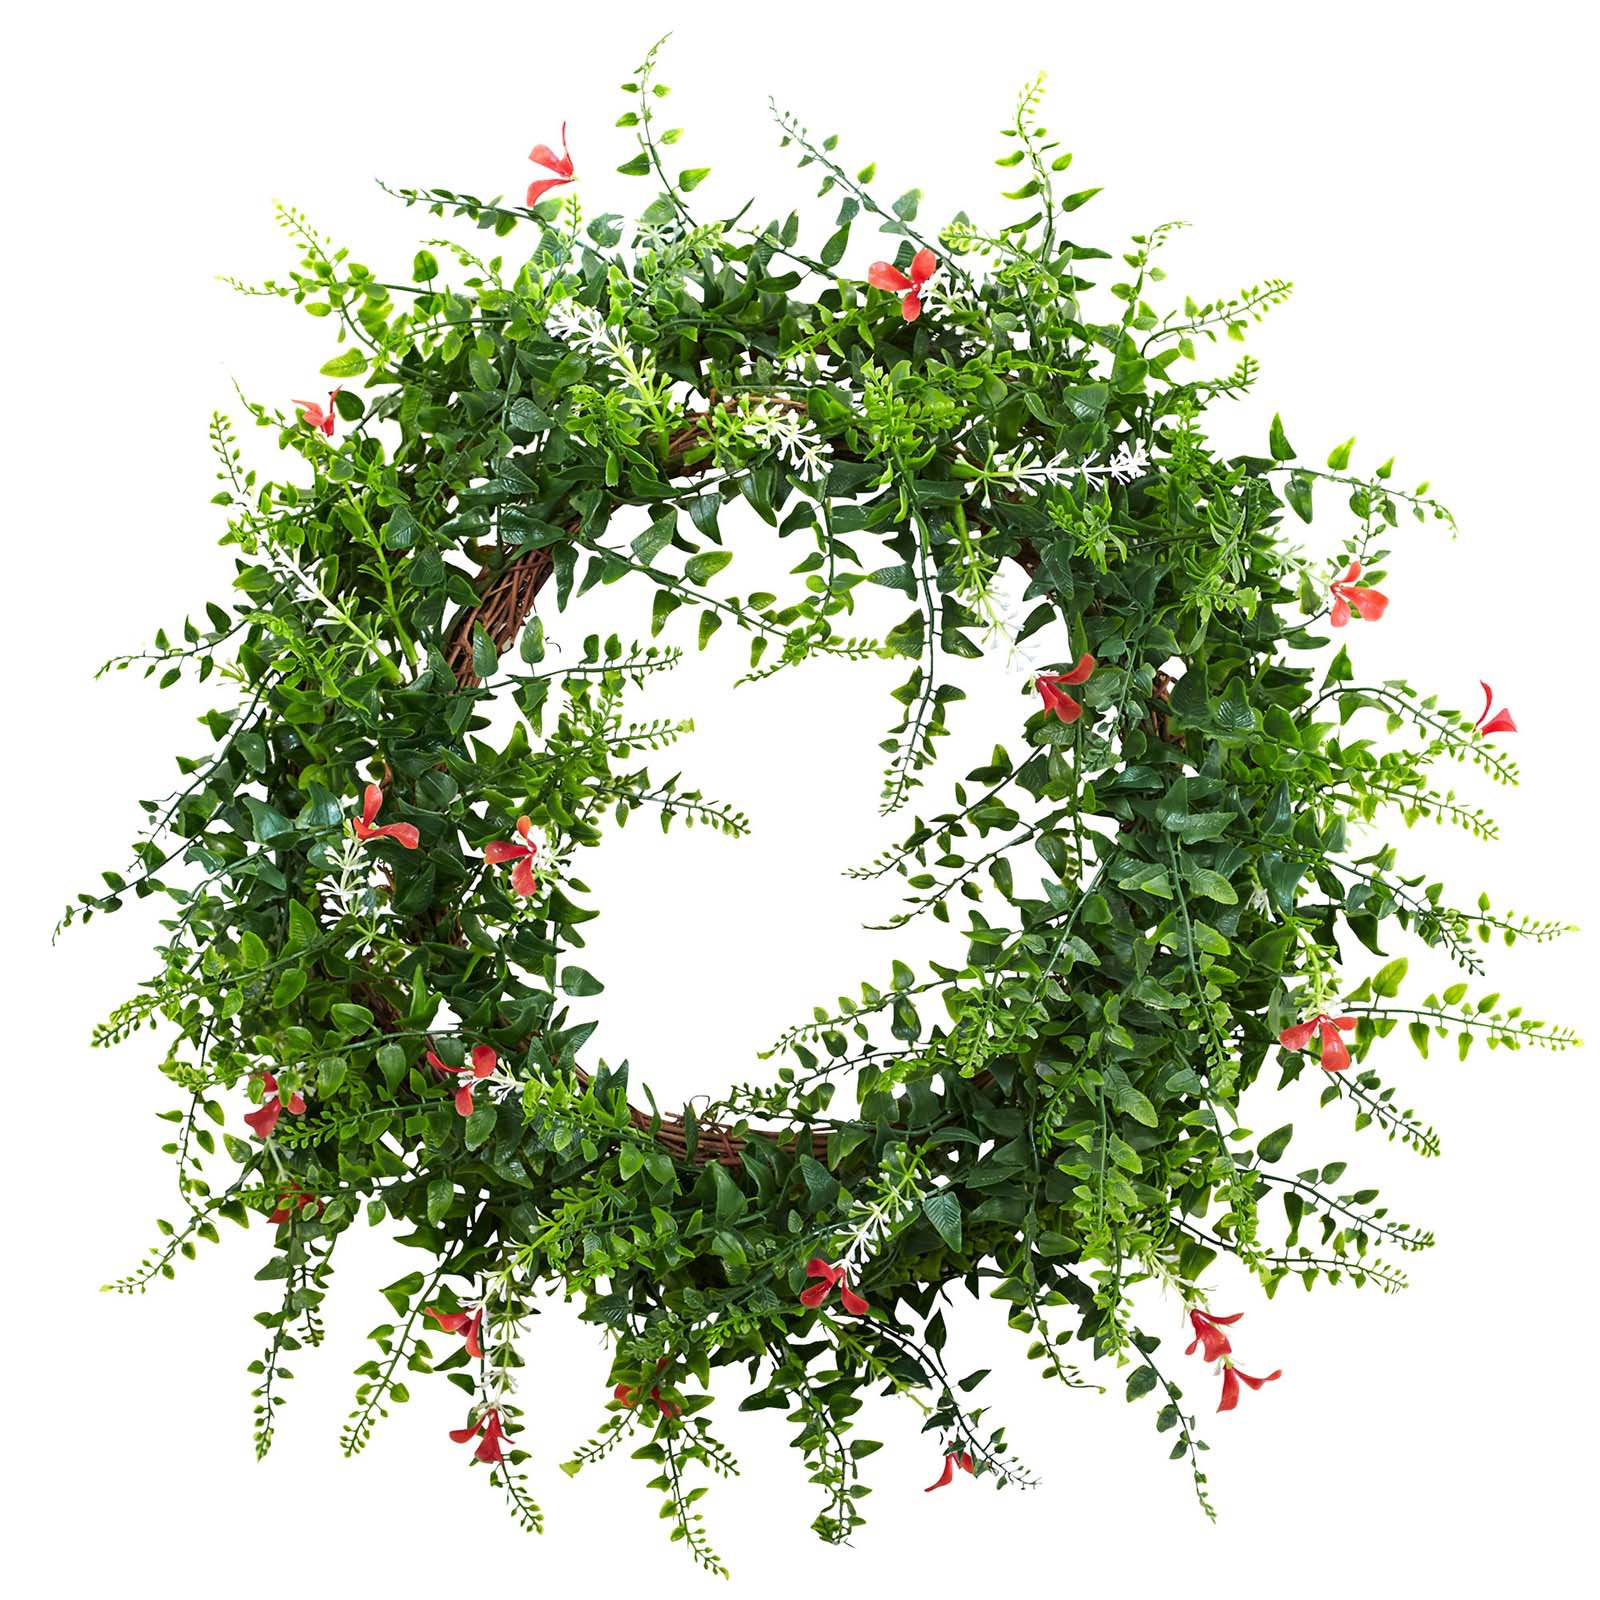 Nearly Natural 18 in. Floral & Fern Double Ring Wreath with Twig Base